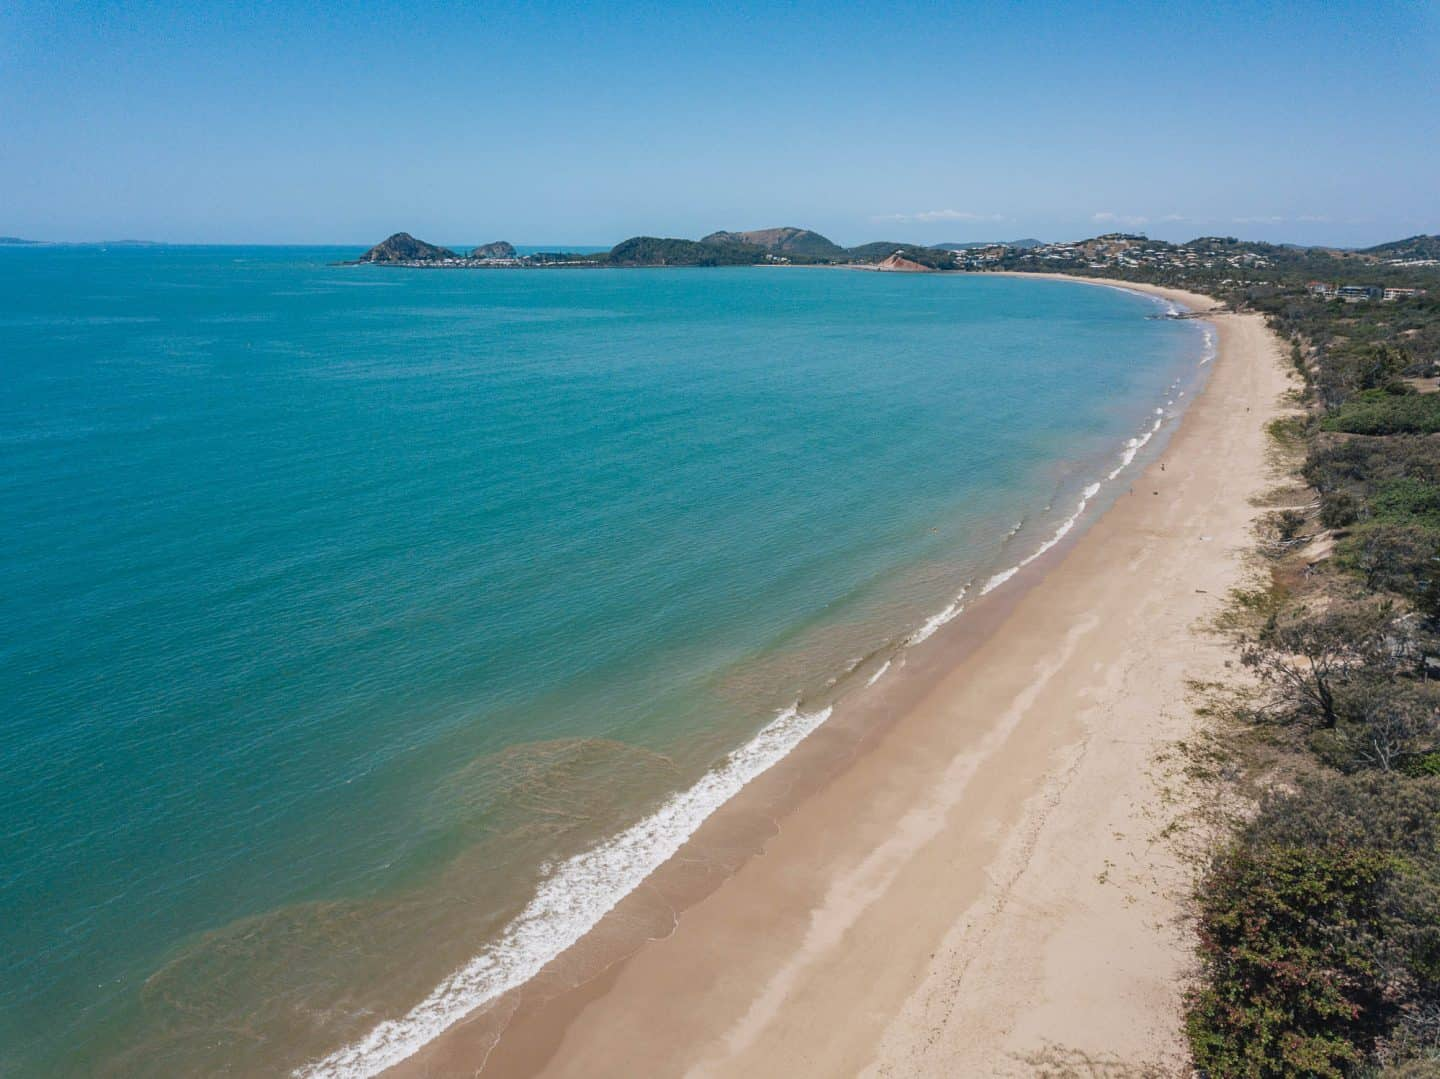 yeppoon beaches, beaches yeppoon, best beaches in yeppoon, beaches in yeppoon, lammermore beach